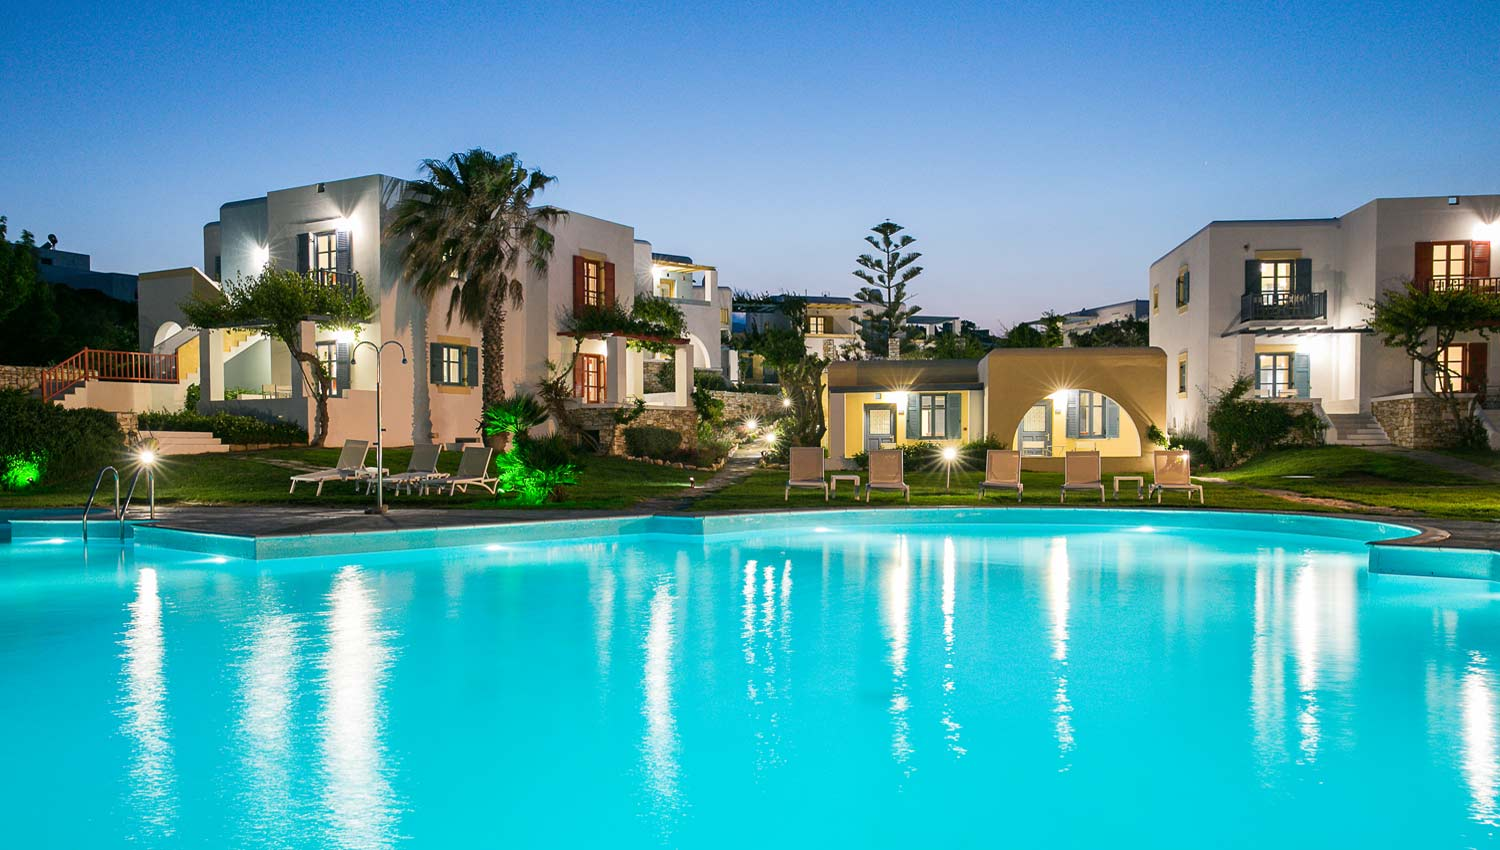 ACQUA MARINA RESORT IN  NEW GOLDEN BEACH